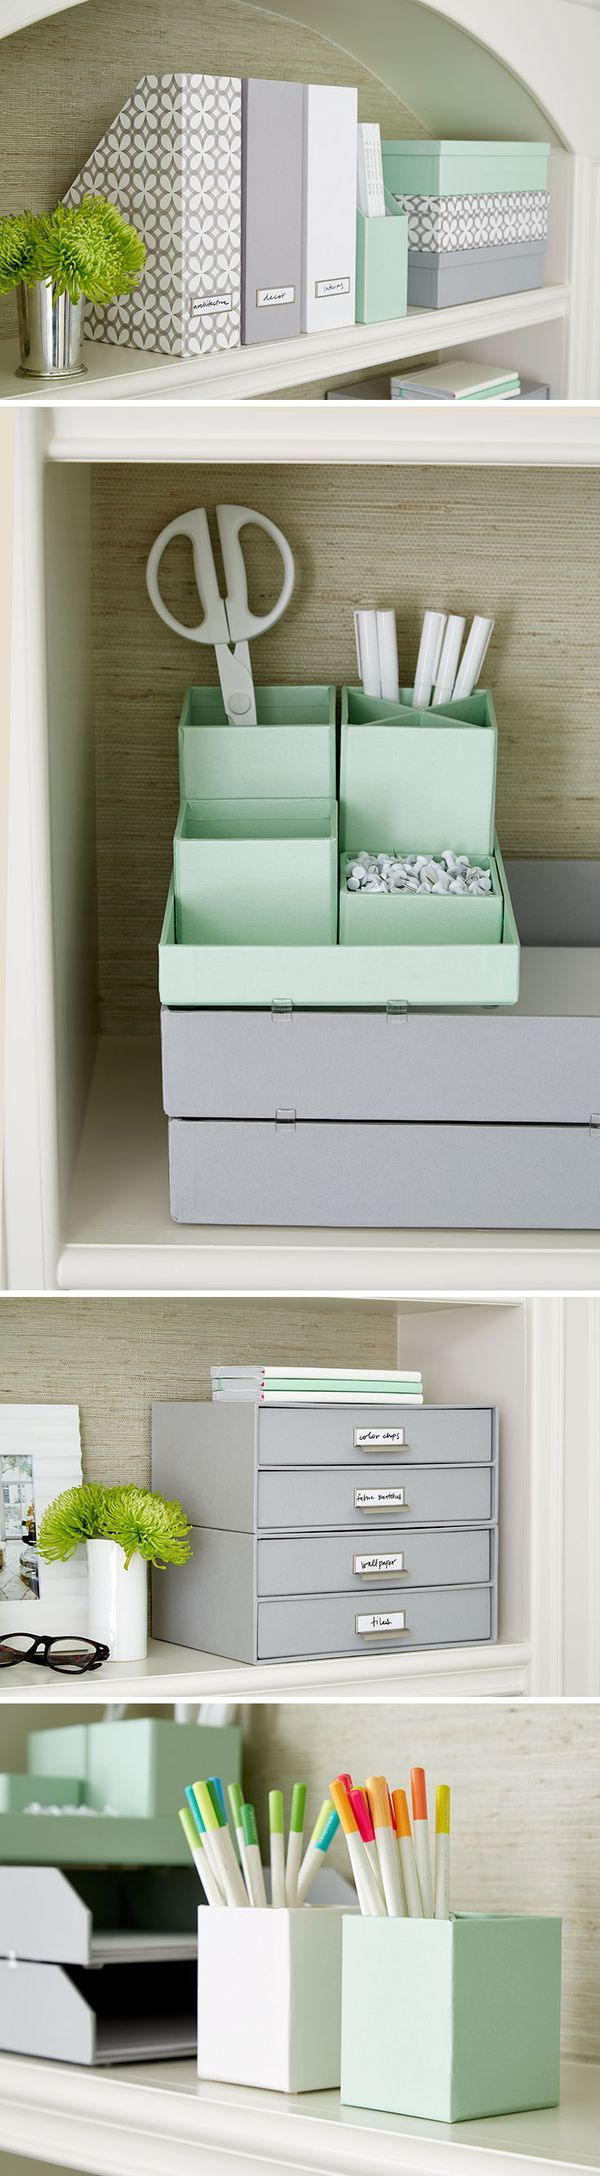 Our colorful Stockholm Collection lets your create easily accessible, yet concealed storage for office supplies. Mix and match colors and patterns, and show off your style.